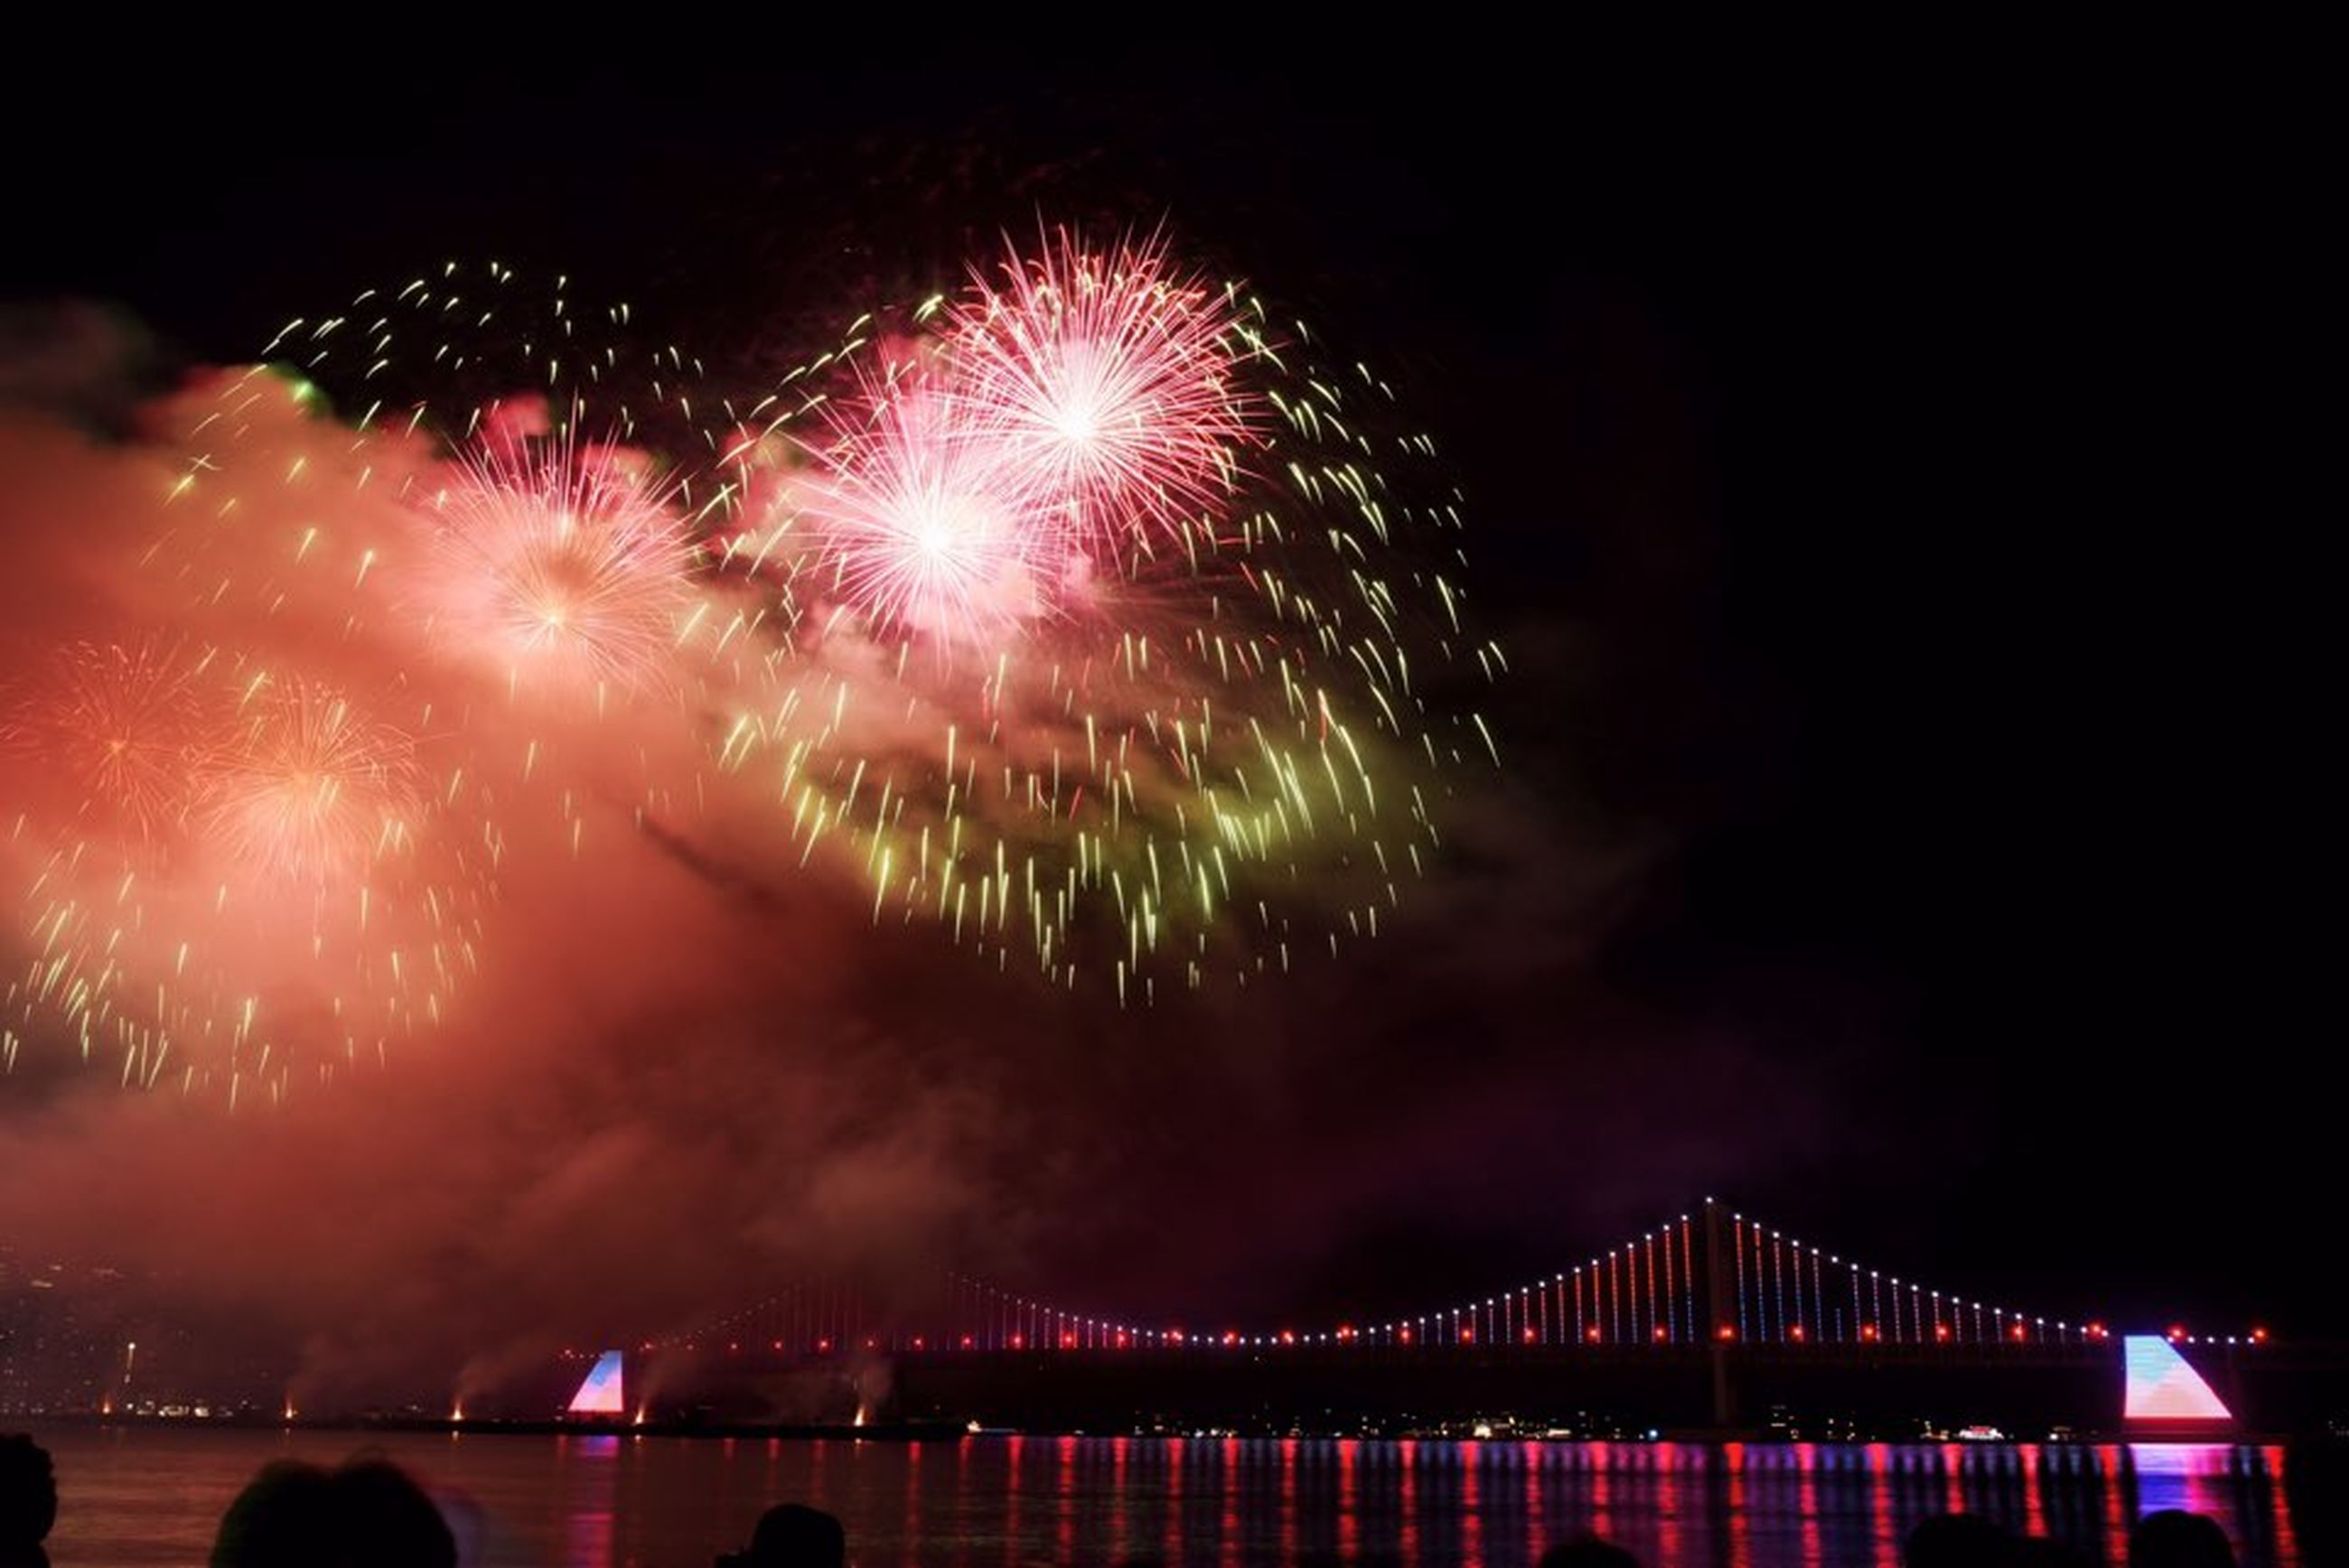 firework, firework display, night, celebration, illuminated, motion, arts culture and entertainment, exploding, event, sky, firework - man made object, long exposure, nature, architecture, water, no people, smoke - physical structure, multi colored, bridge, blurred motion, outdoors, new year's eve, sparks, explosive